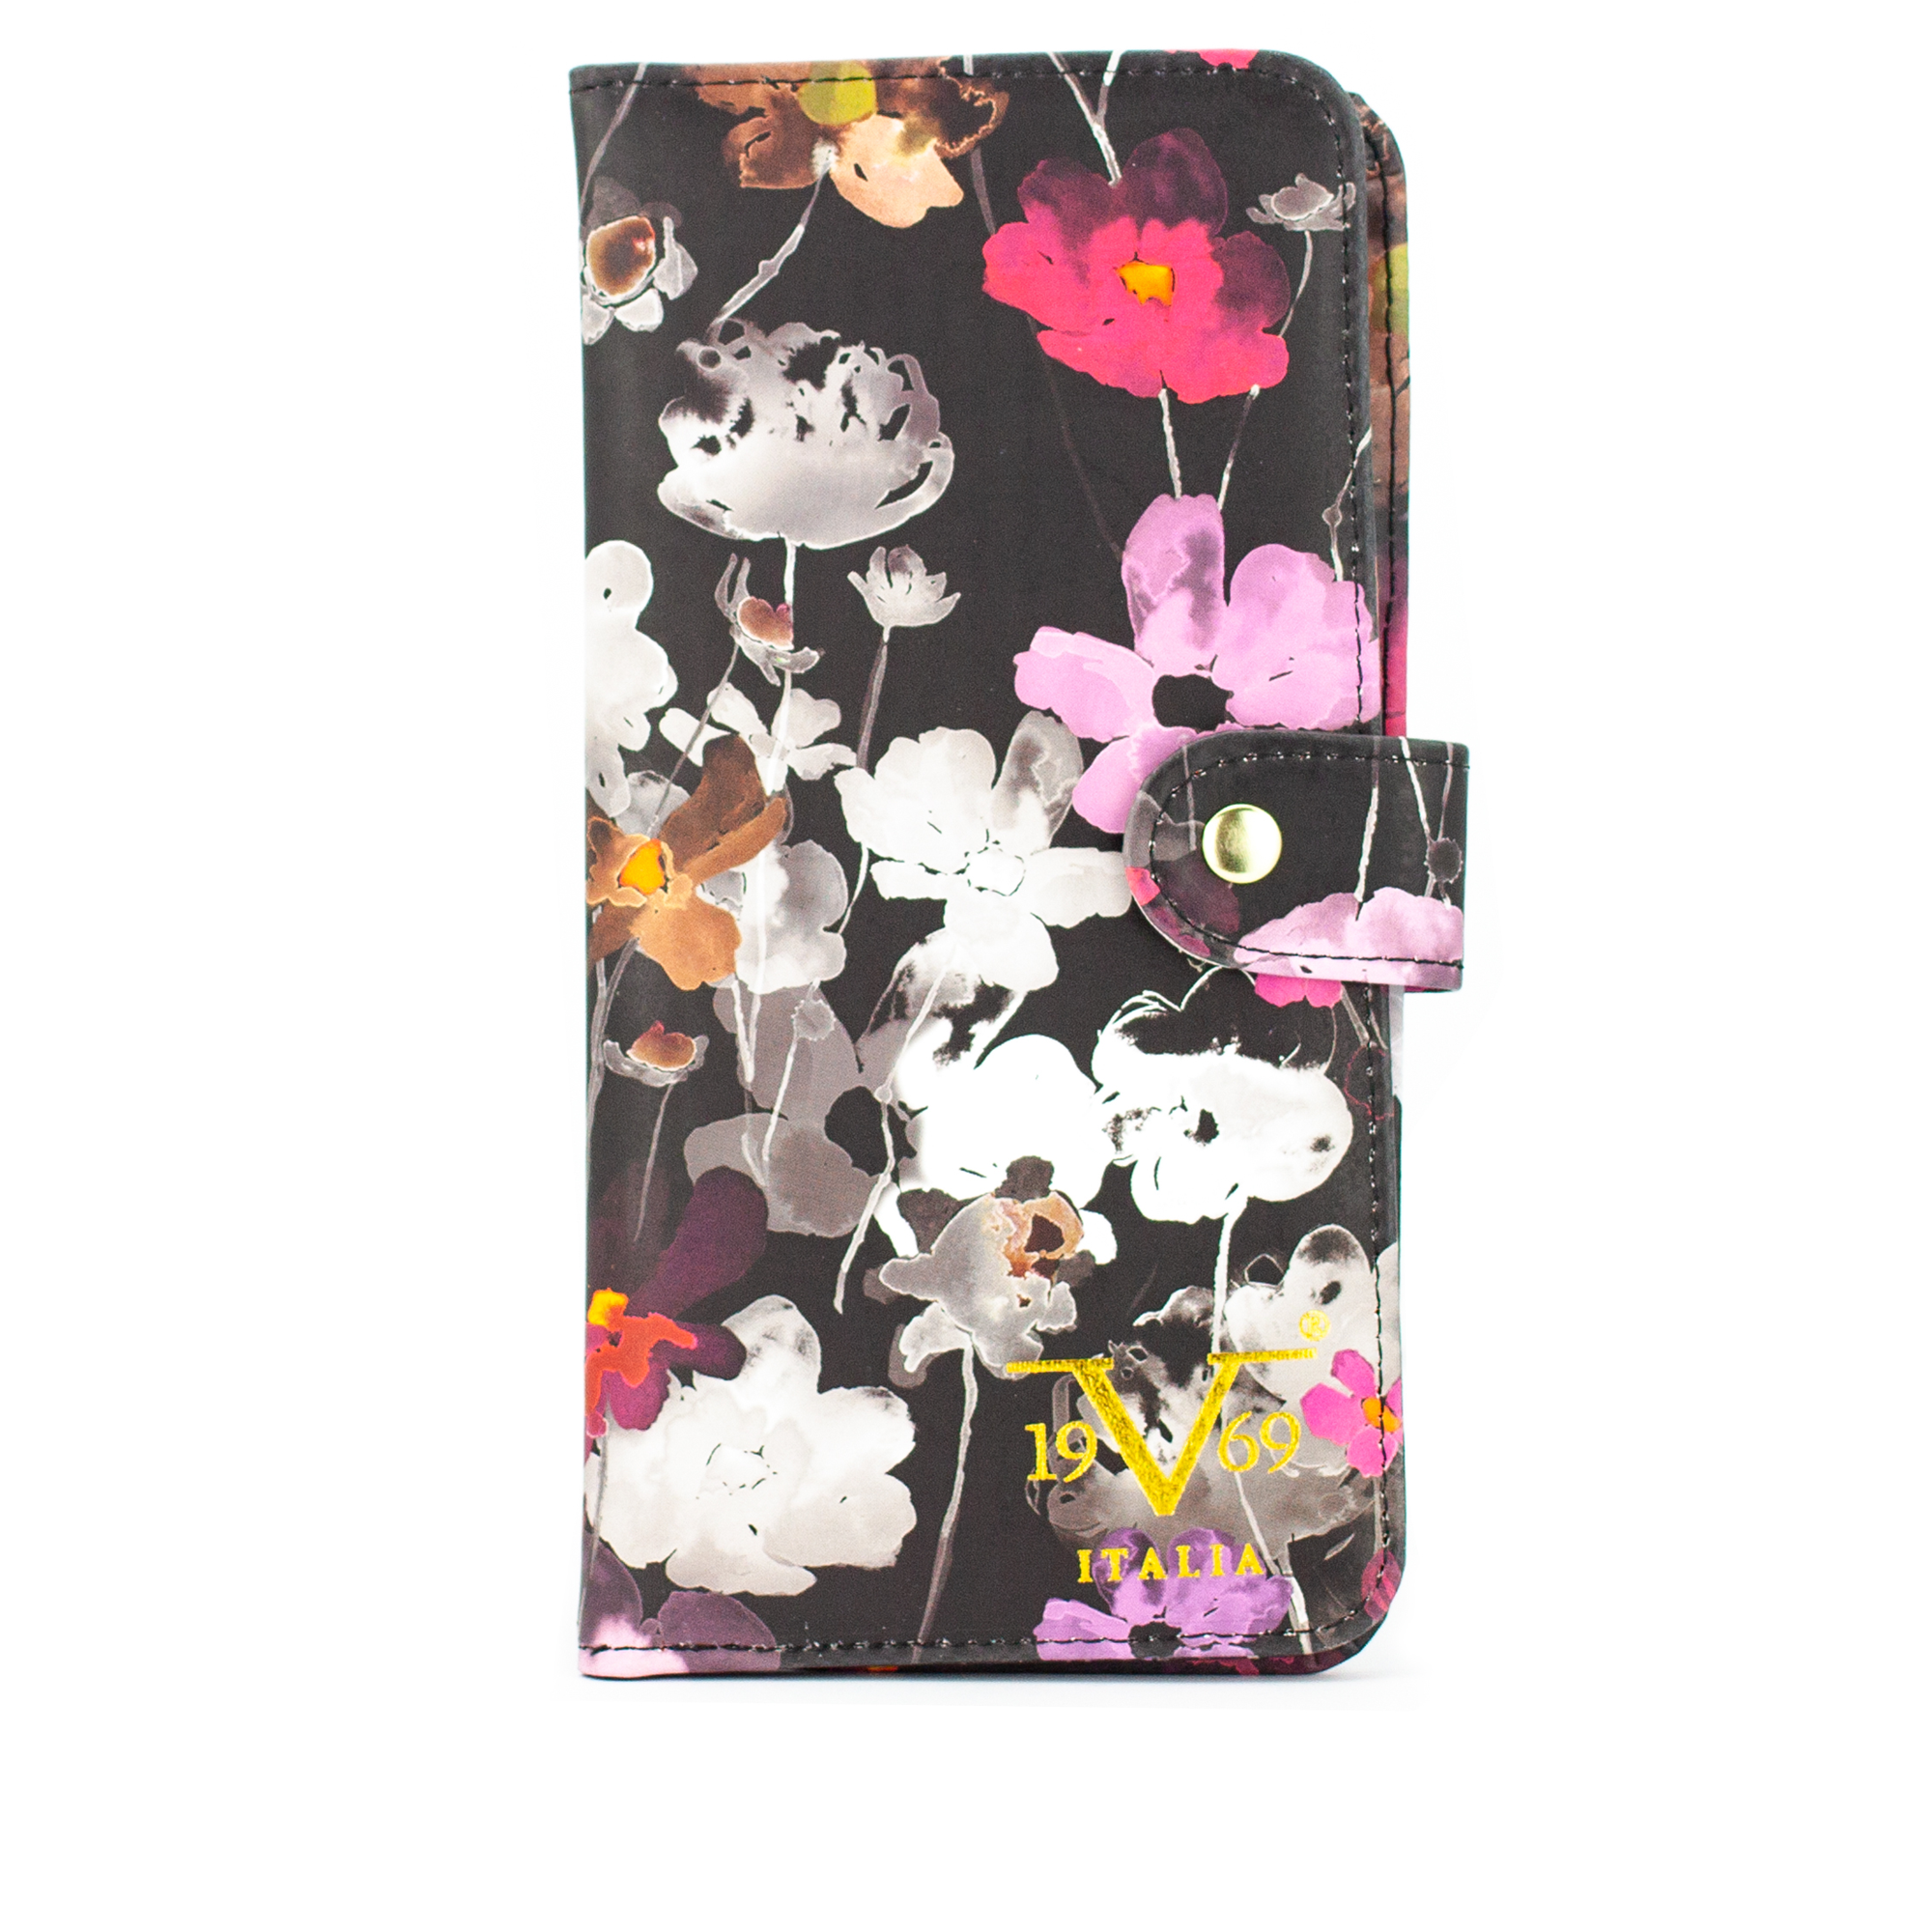 RFID Blocking Passport Cover and Wallet - Watercolor Flowers - Travellty